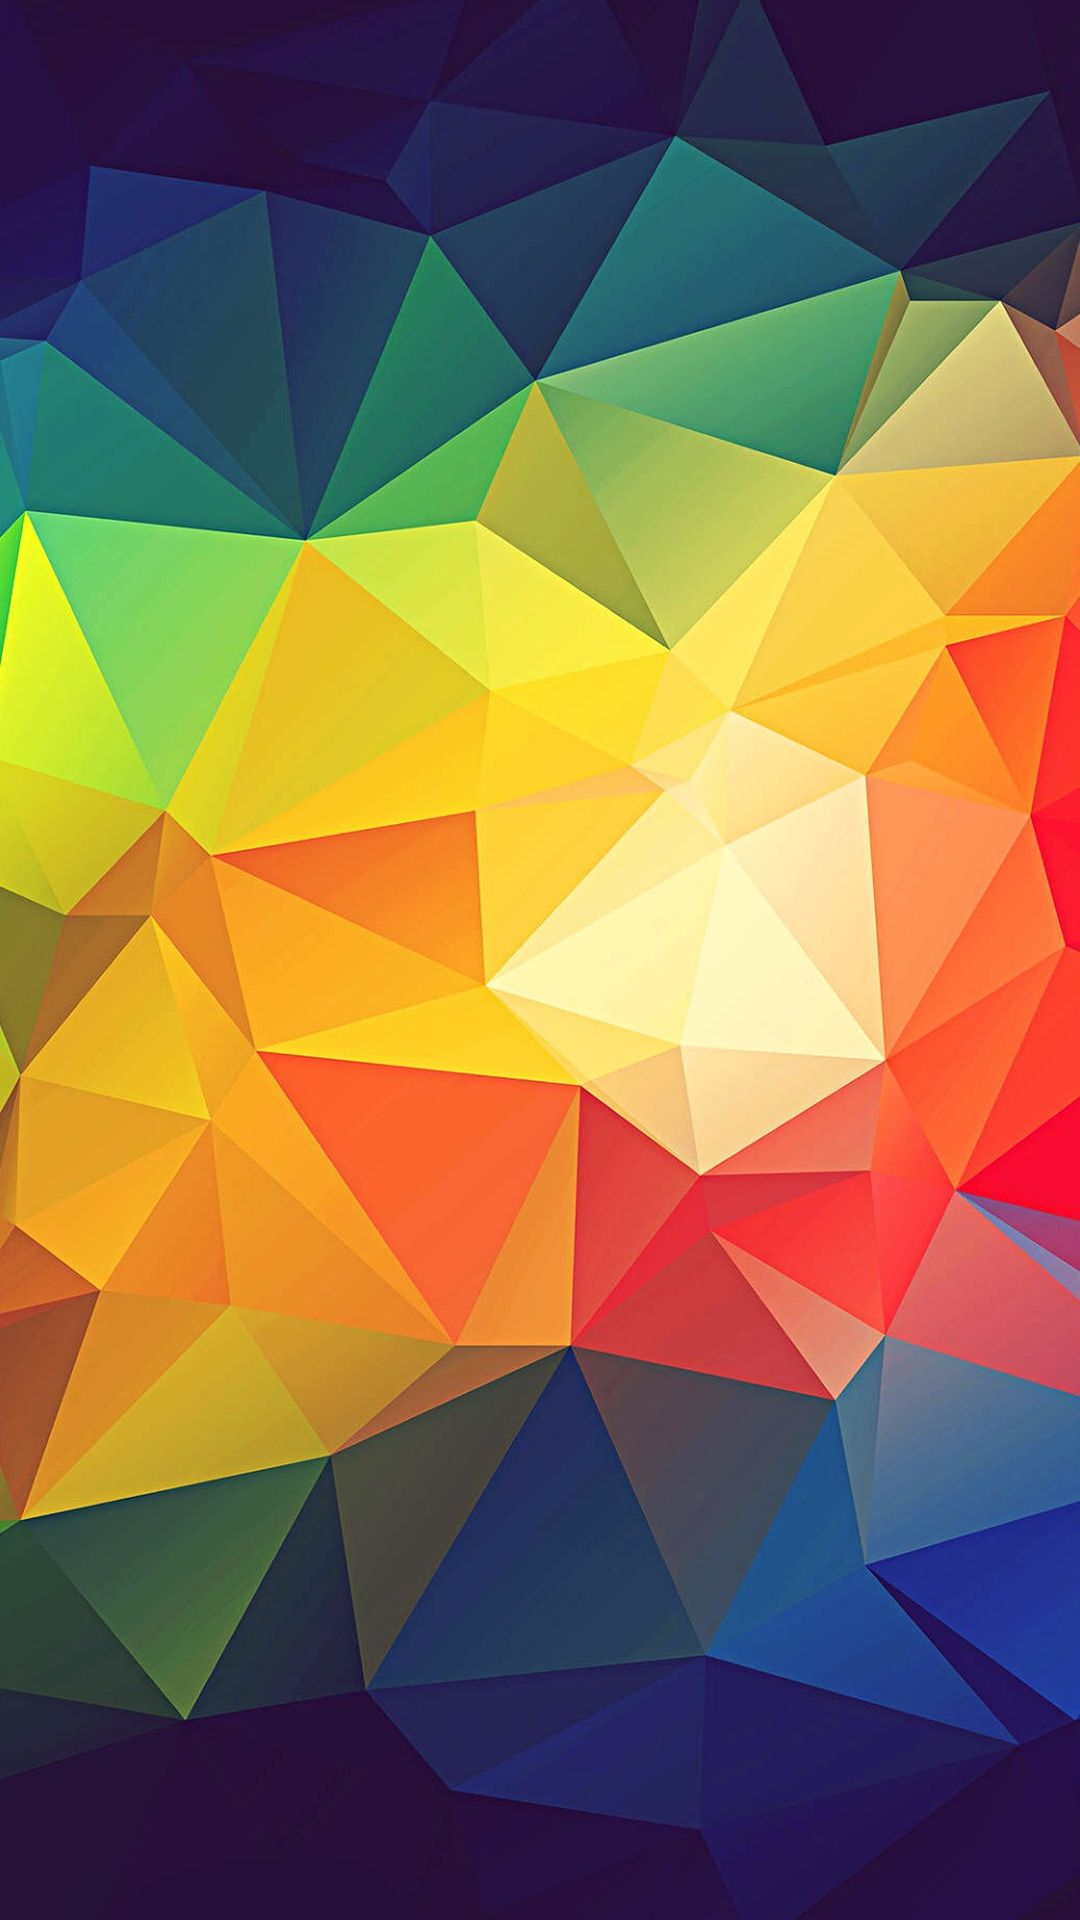 triangle abstract wallpapers hd - photo #2